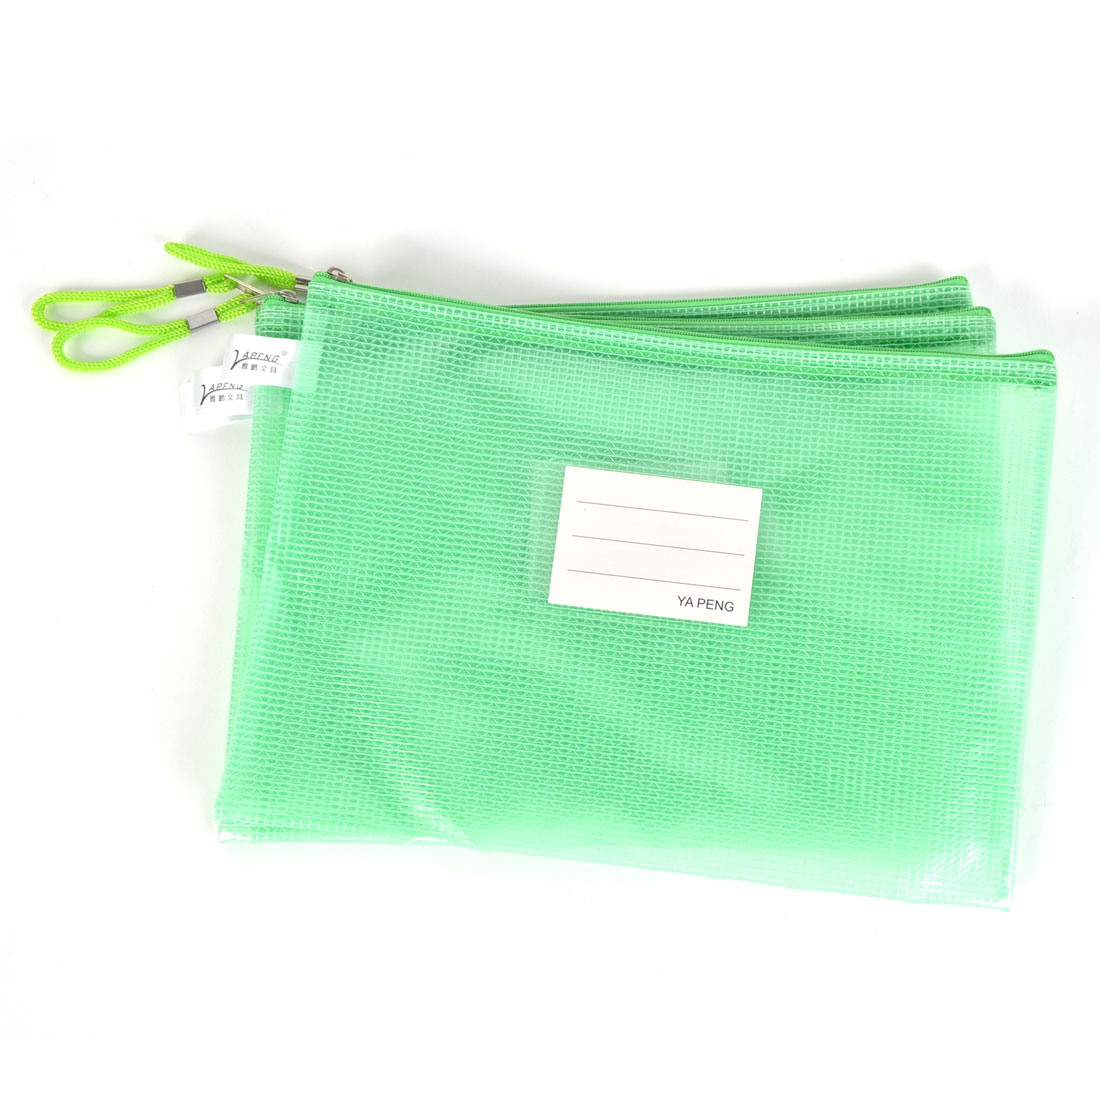 3 Pcs Netting Decor Surface A4 Document File Holder Zipper Bag Green